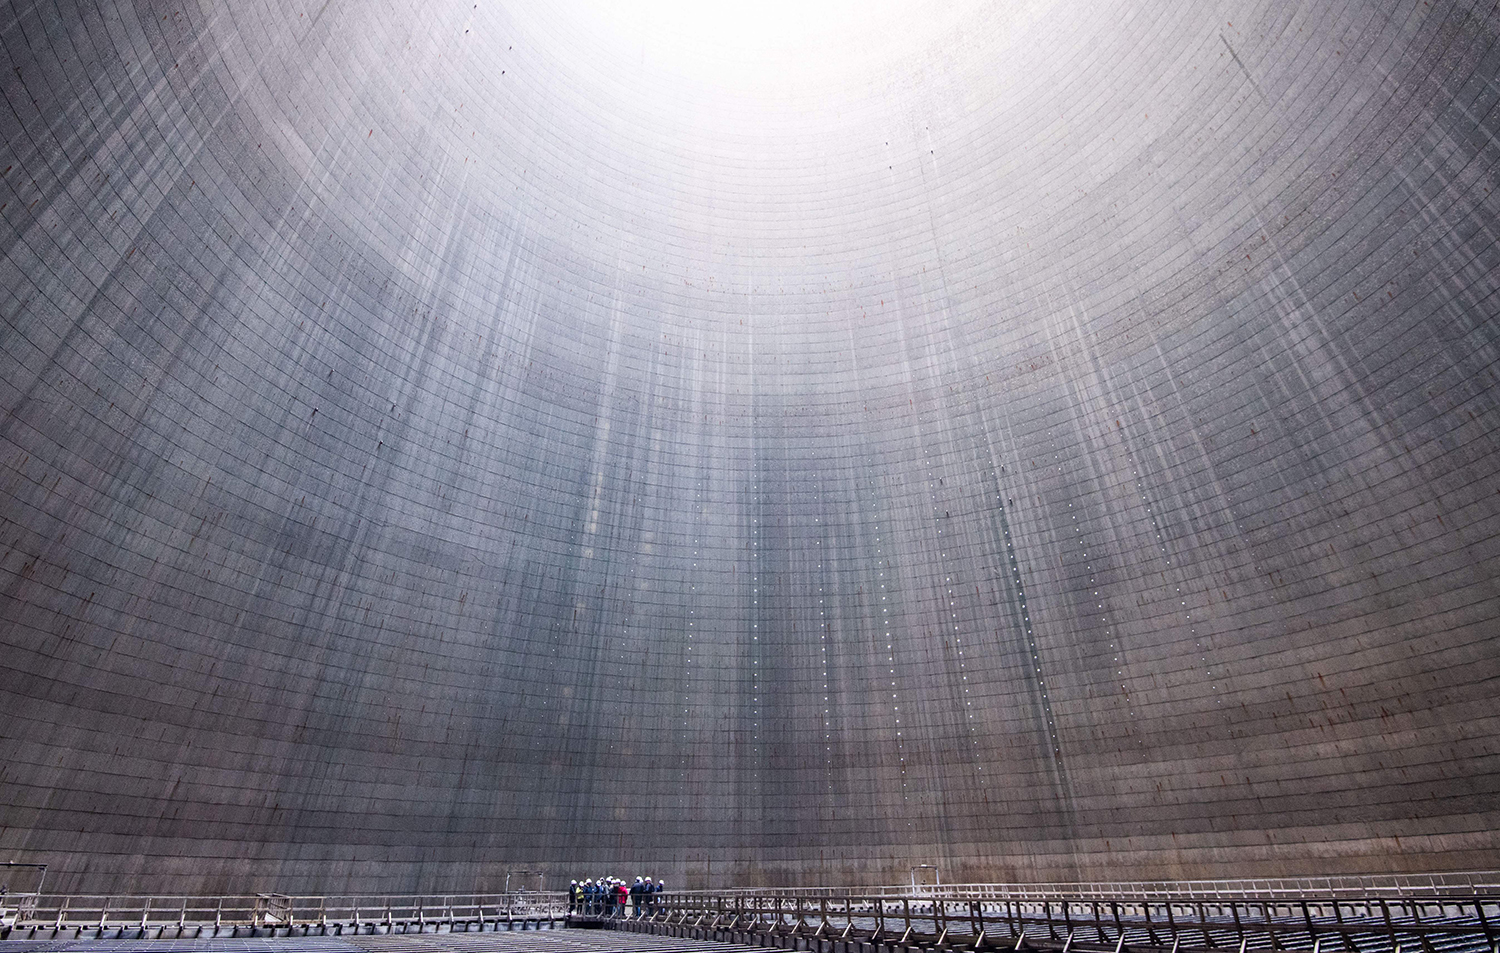 A group visits the inside of a cooling tower at Mehrum coal-fired power plant in Hohenhameln, Germany, on Jan. 16. JULIAN STRATENSCHULTE/dpa/AFP via Getty Images